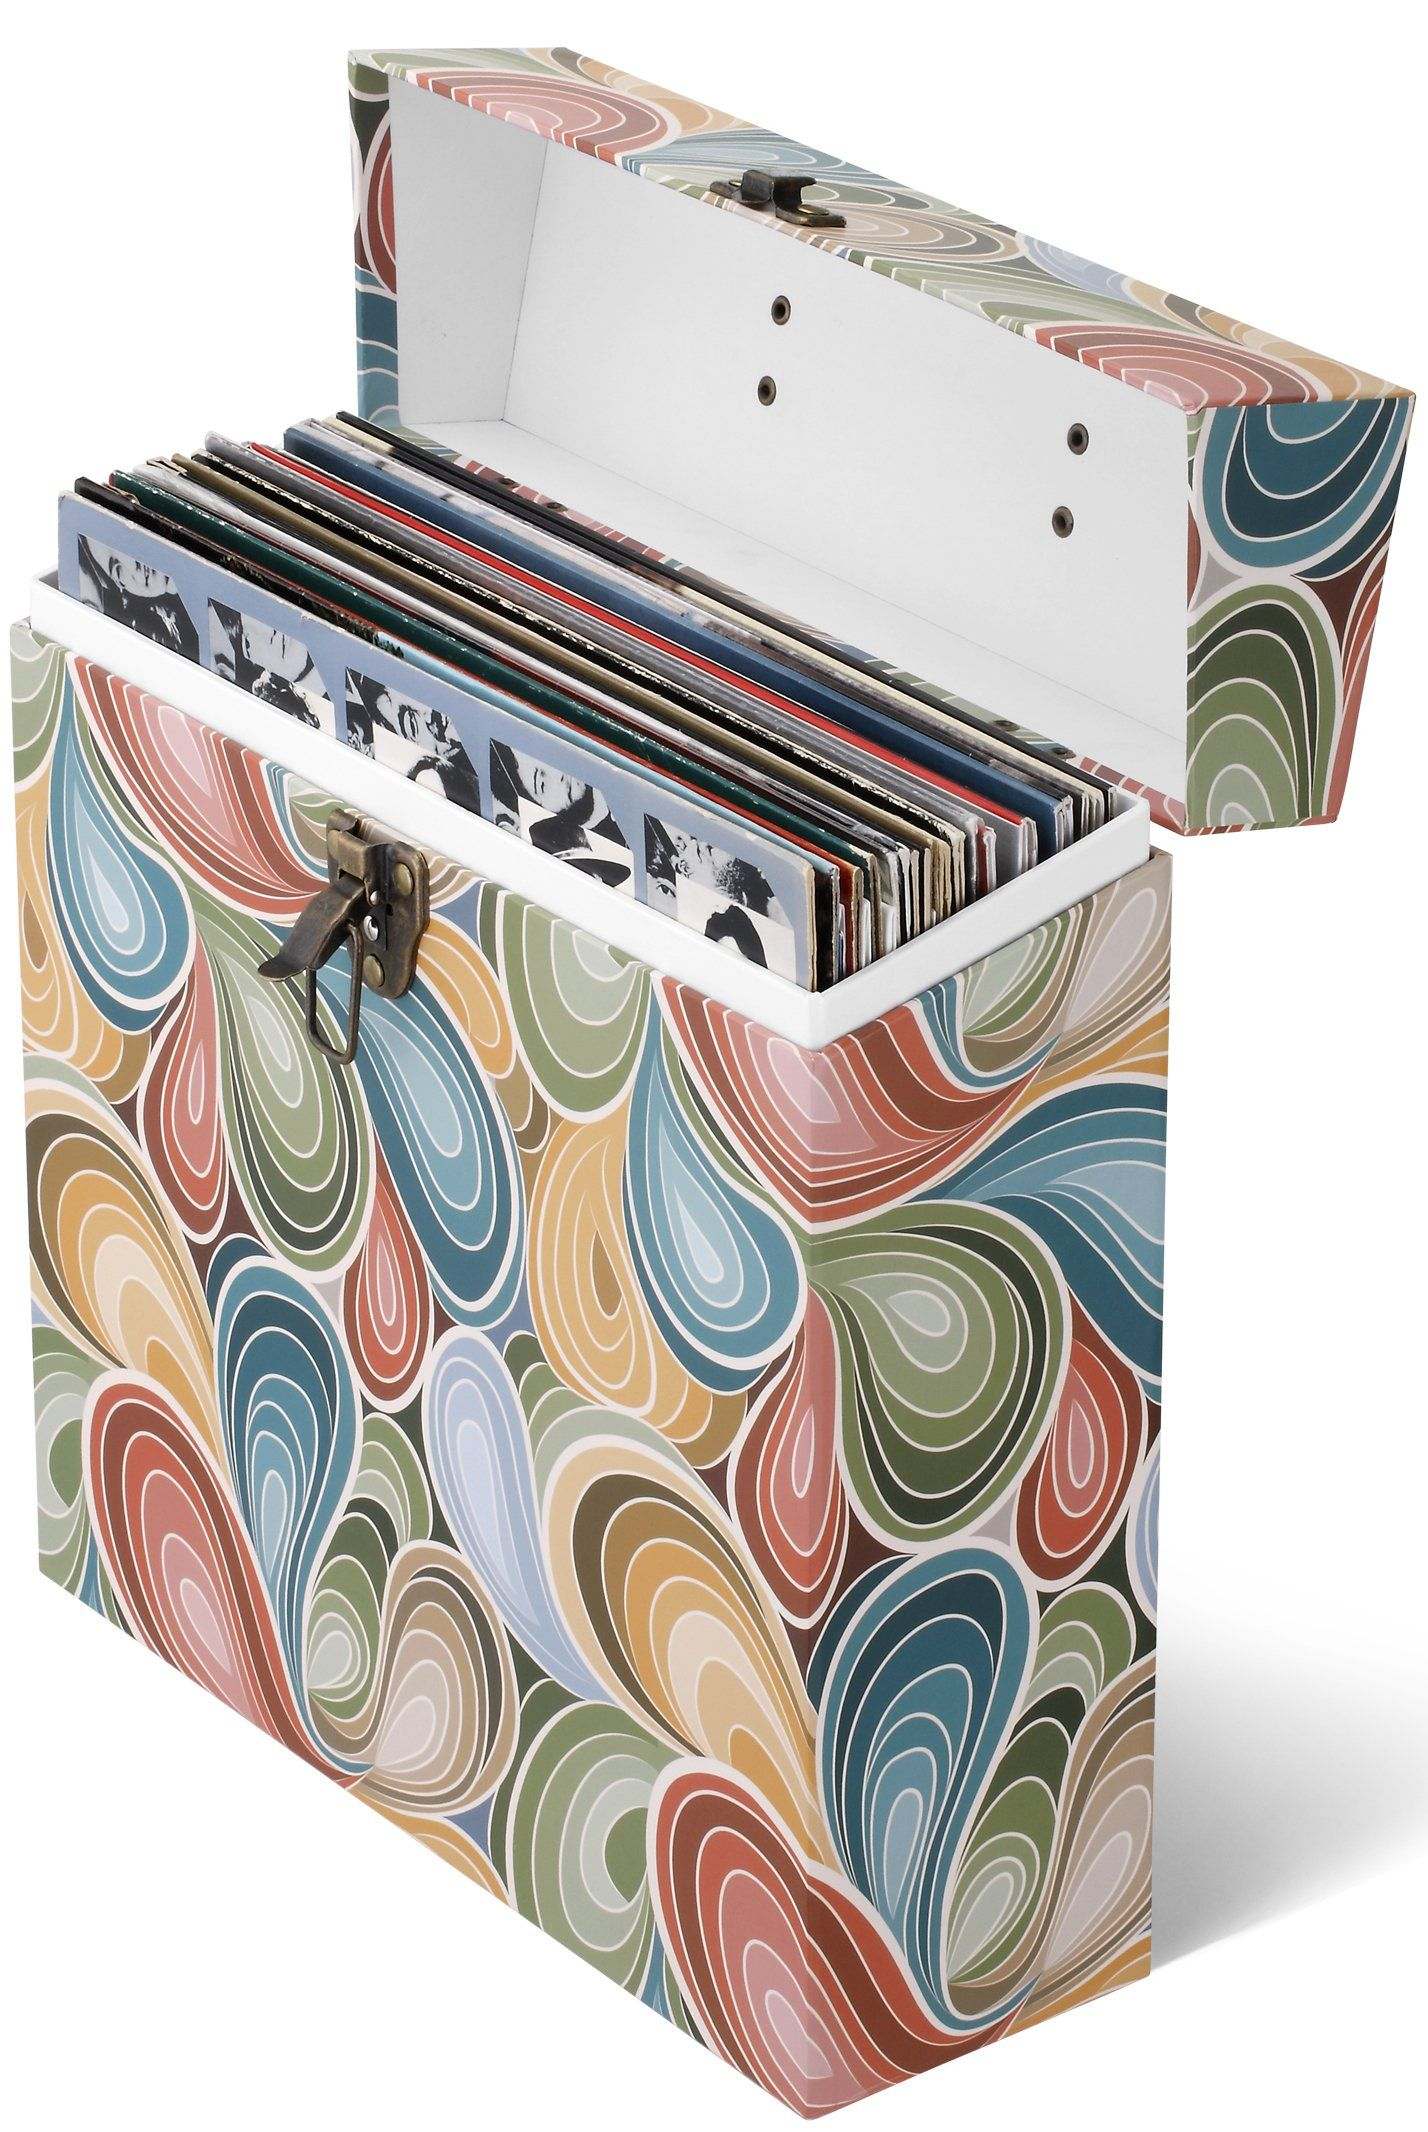 Paisley Parts Lp Vinyl Record Storage Box And Carrying Case For Lps Albums Products Vinyl Record Storage Box Record Storage Box Vinyl Record Storage